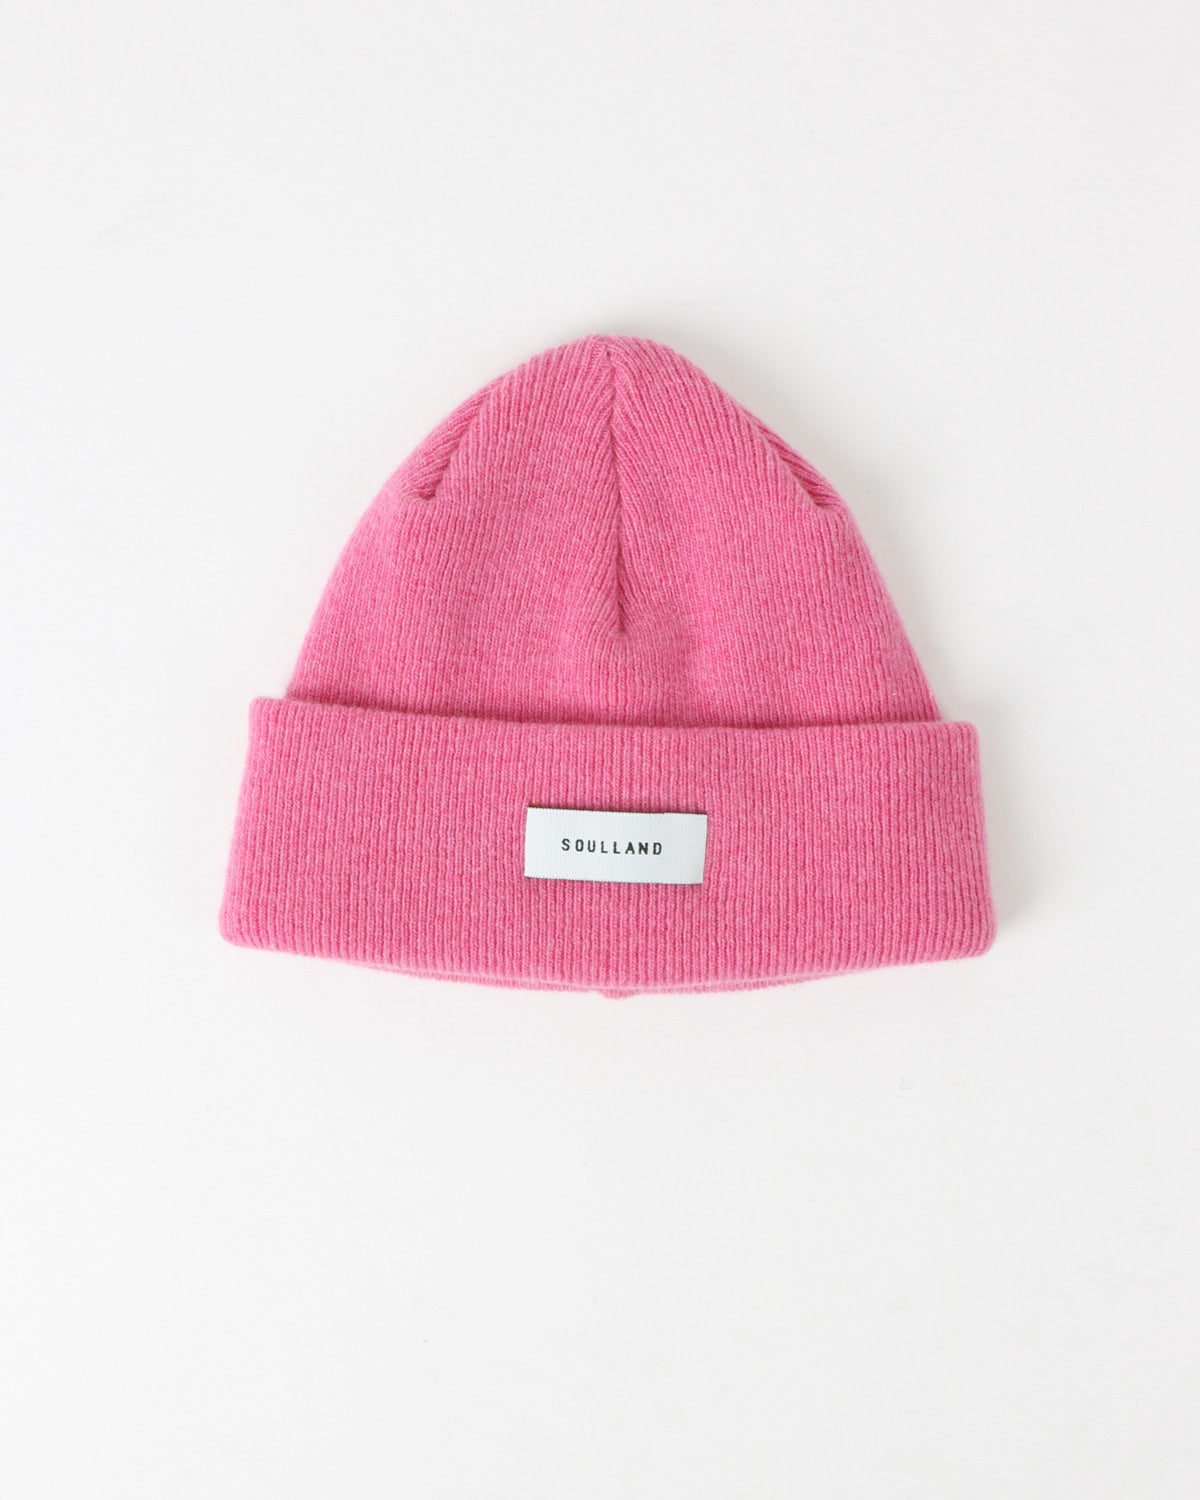 soulland_villy beanie_dusty pink_details_1_2